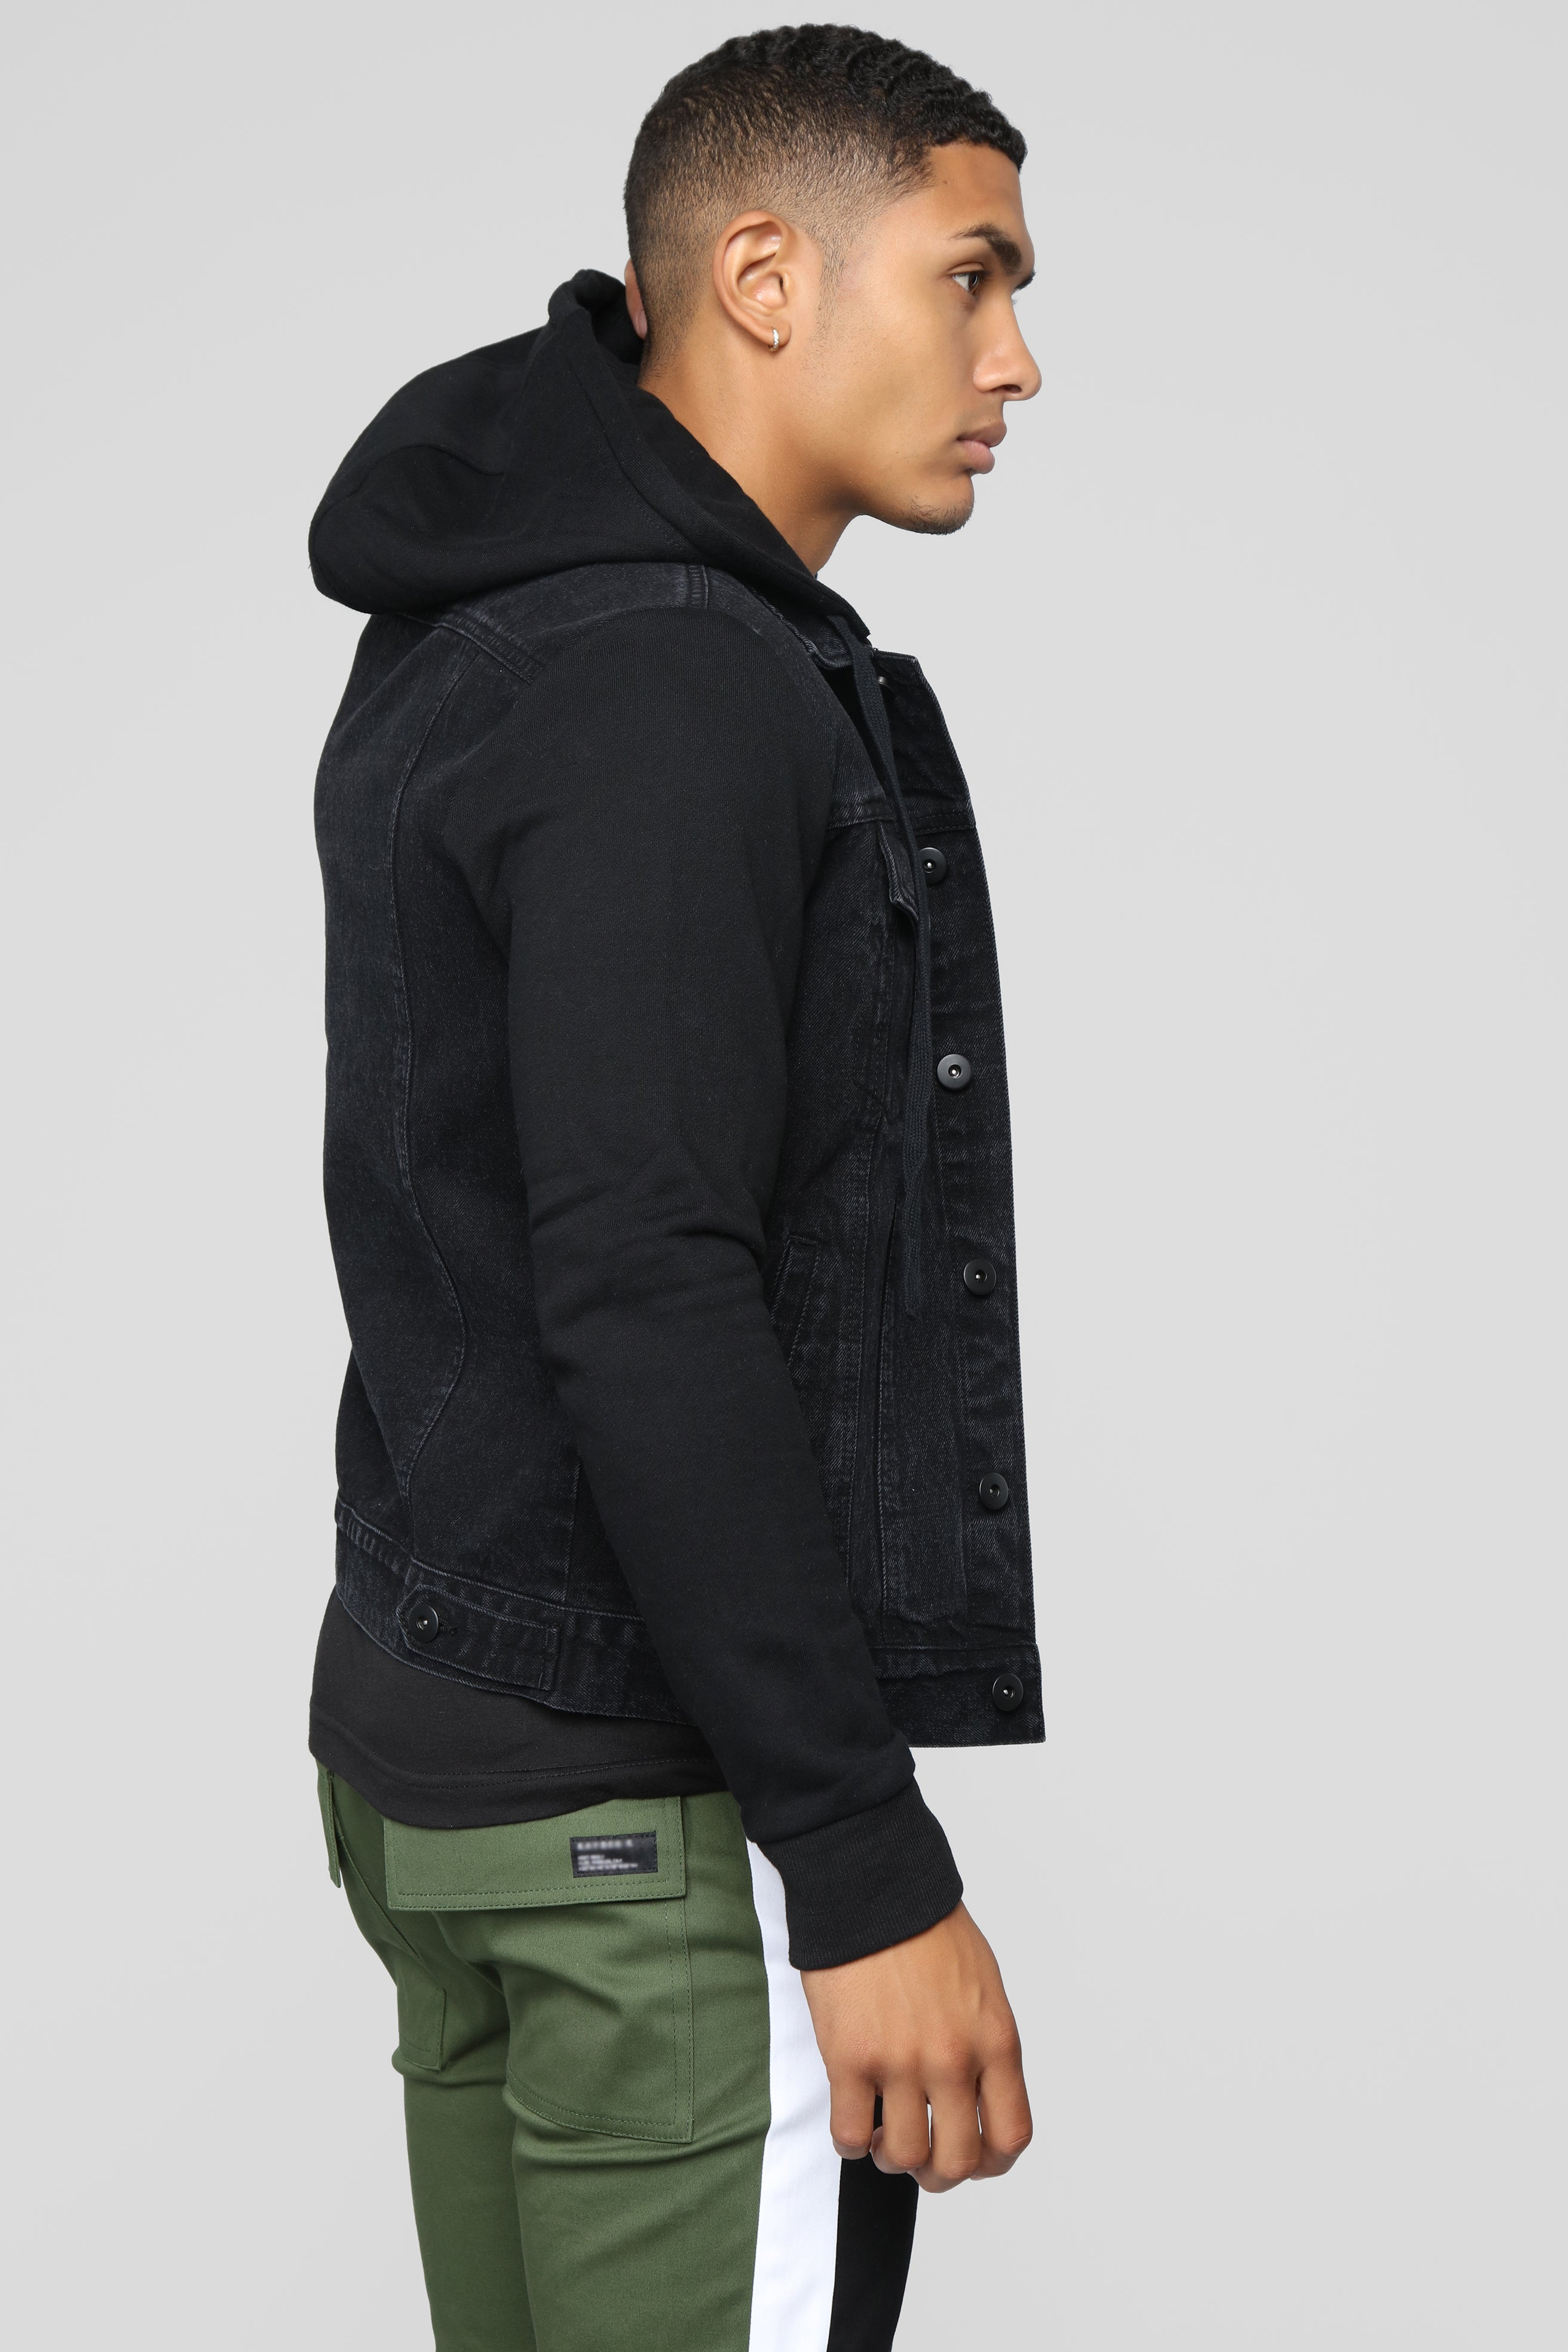 b637f8c4d6b0e Blaine Hooded Denim Jacket - Black